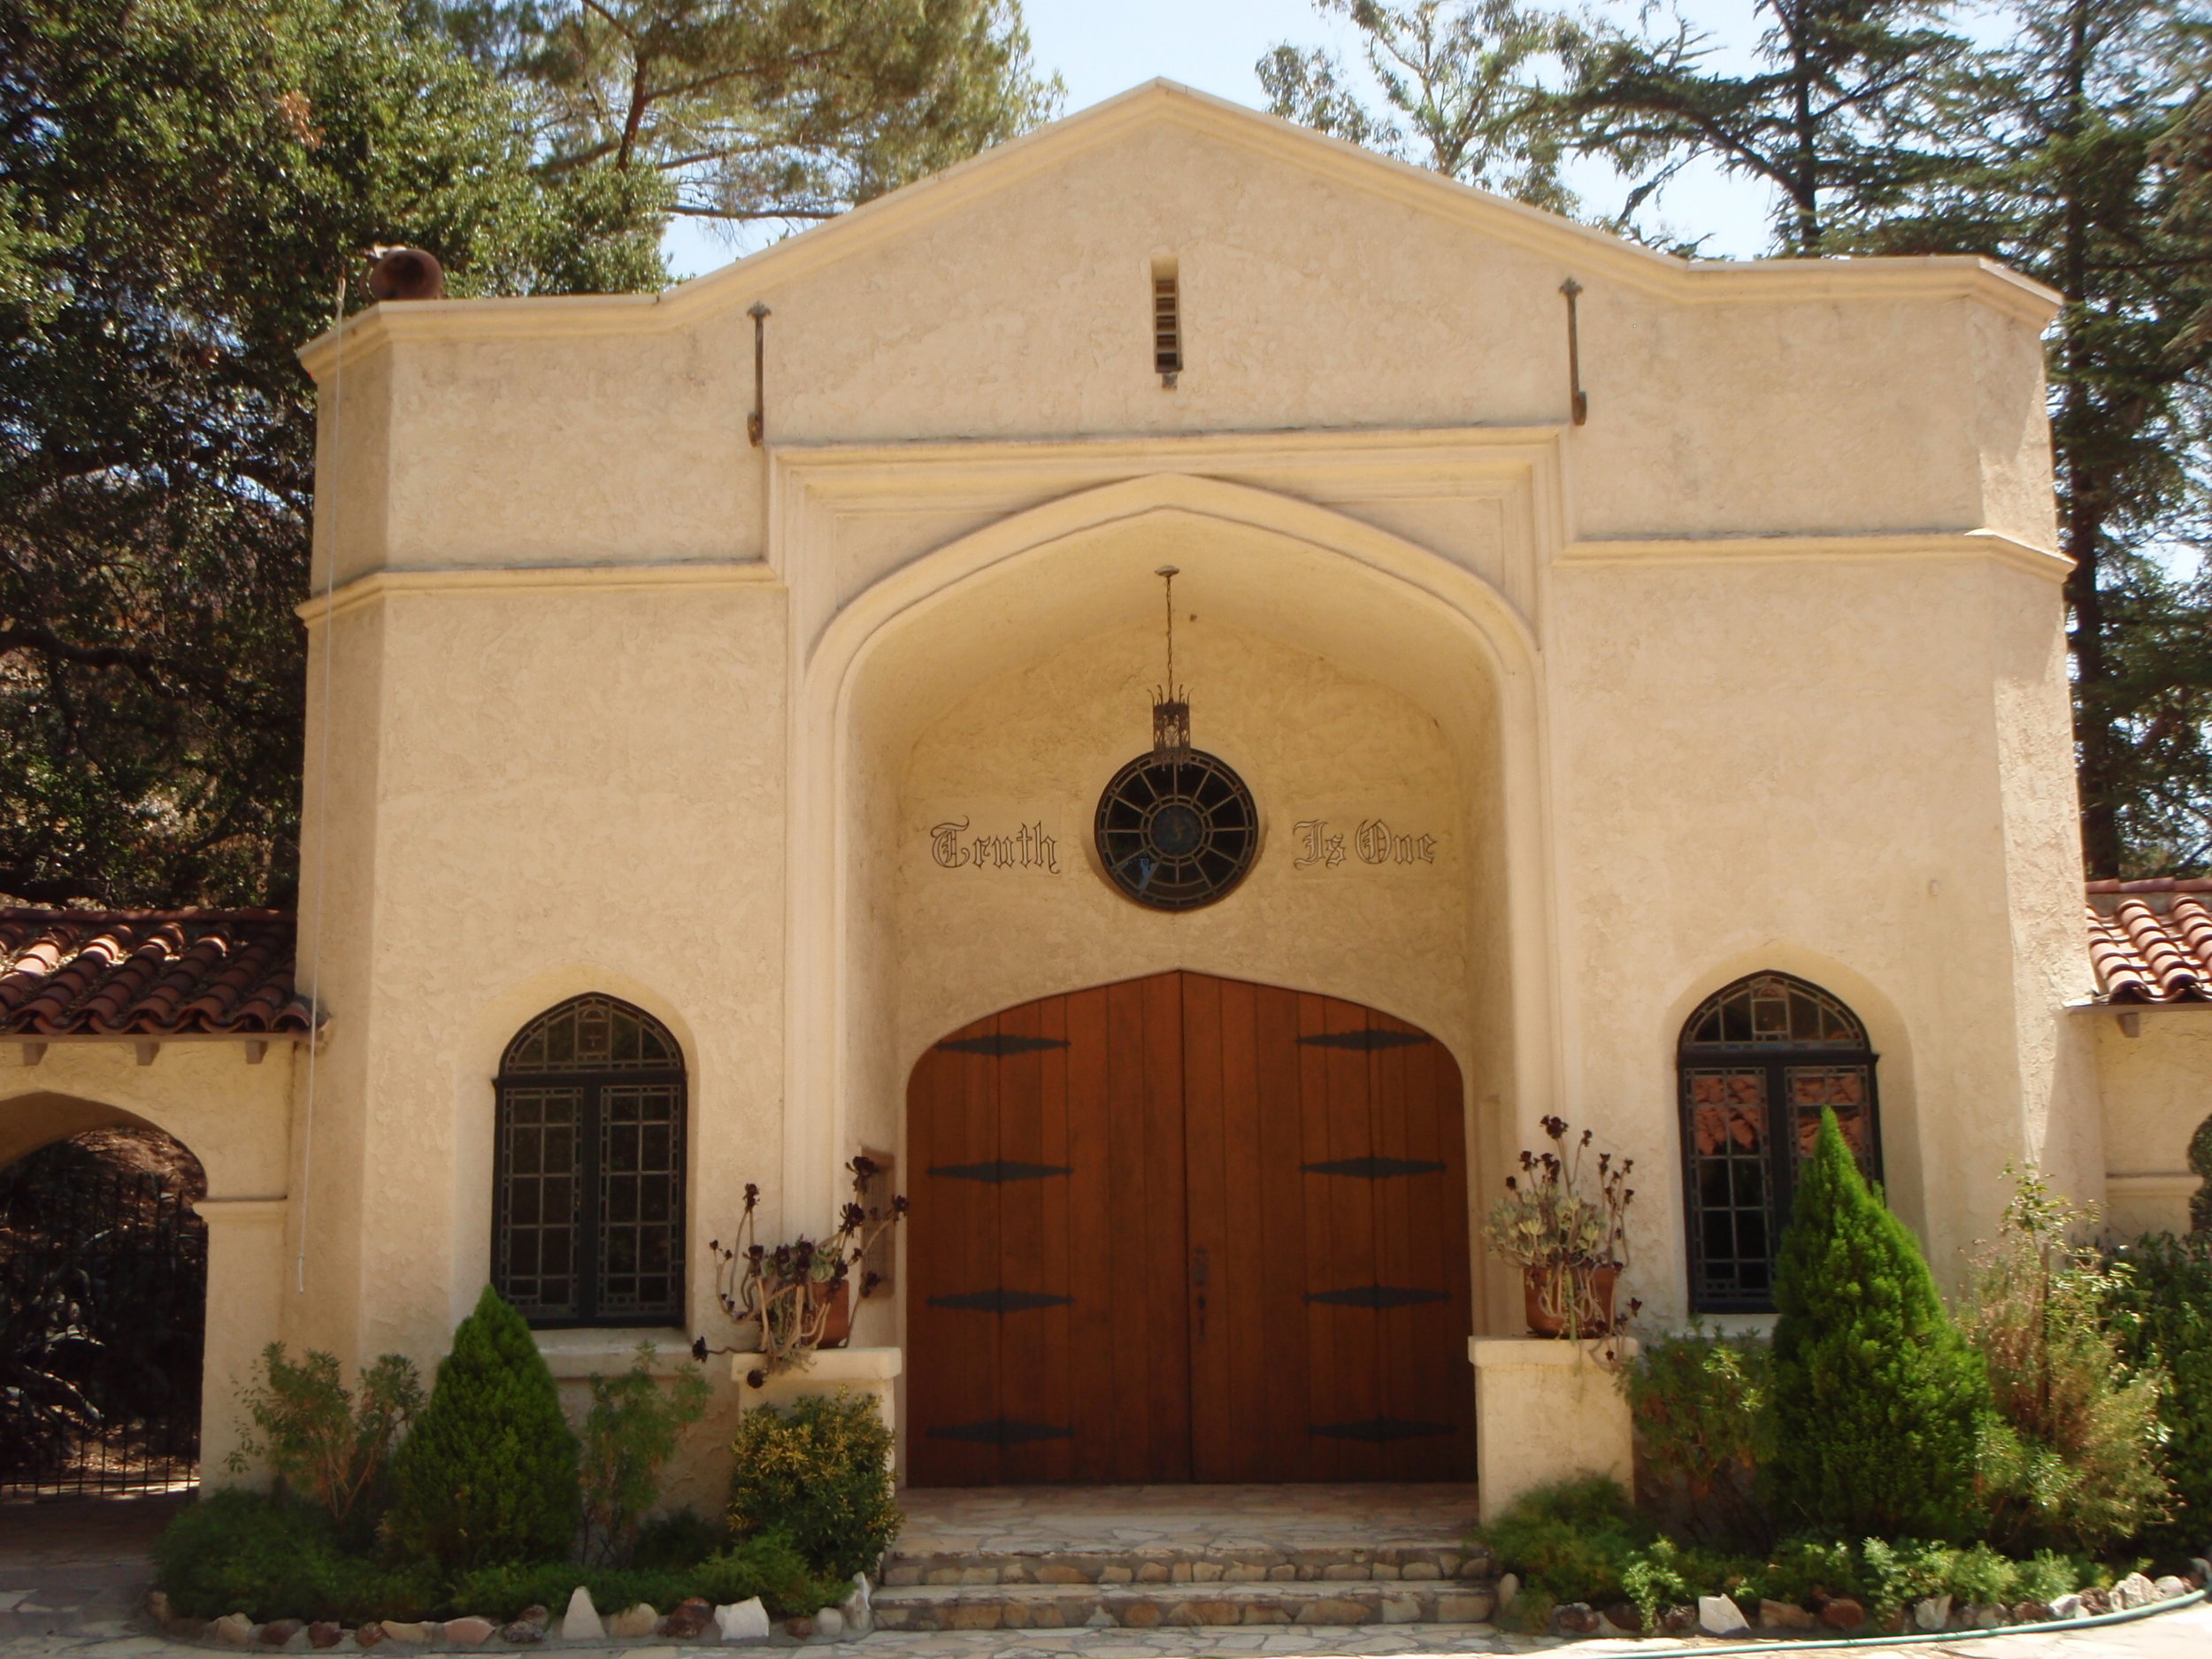 """""""TRUTH IS ONE"""" is inscribed over a doorway at the Vedanta  Ananda Ashrama  in La Crescenta, CA, where Meher Mount co-founder Agnes Baron was staying when she first learned about Avatar Meher Baba in the 1940s. The Ashrama was founded by Swami Paramananda who met Meher Baba in Boston in 1931.(Photo: Sam Ervin, 2012)"""